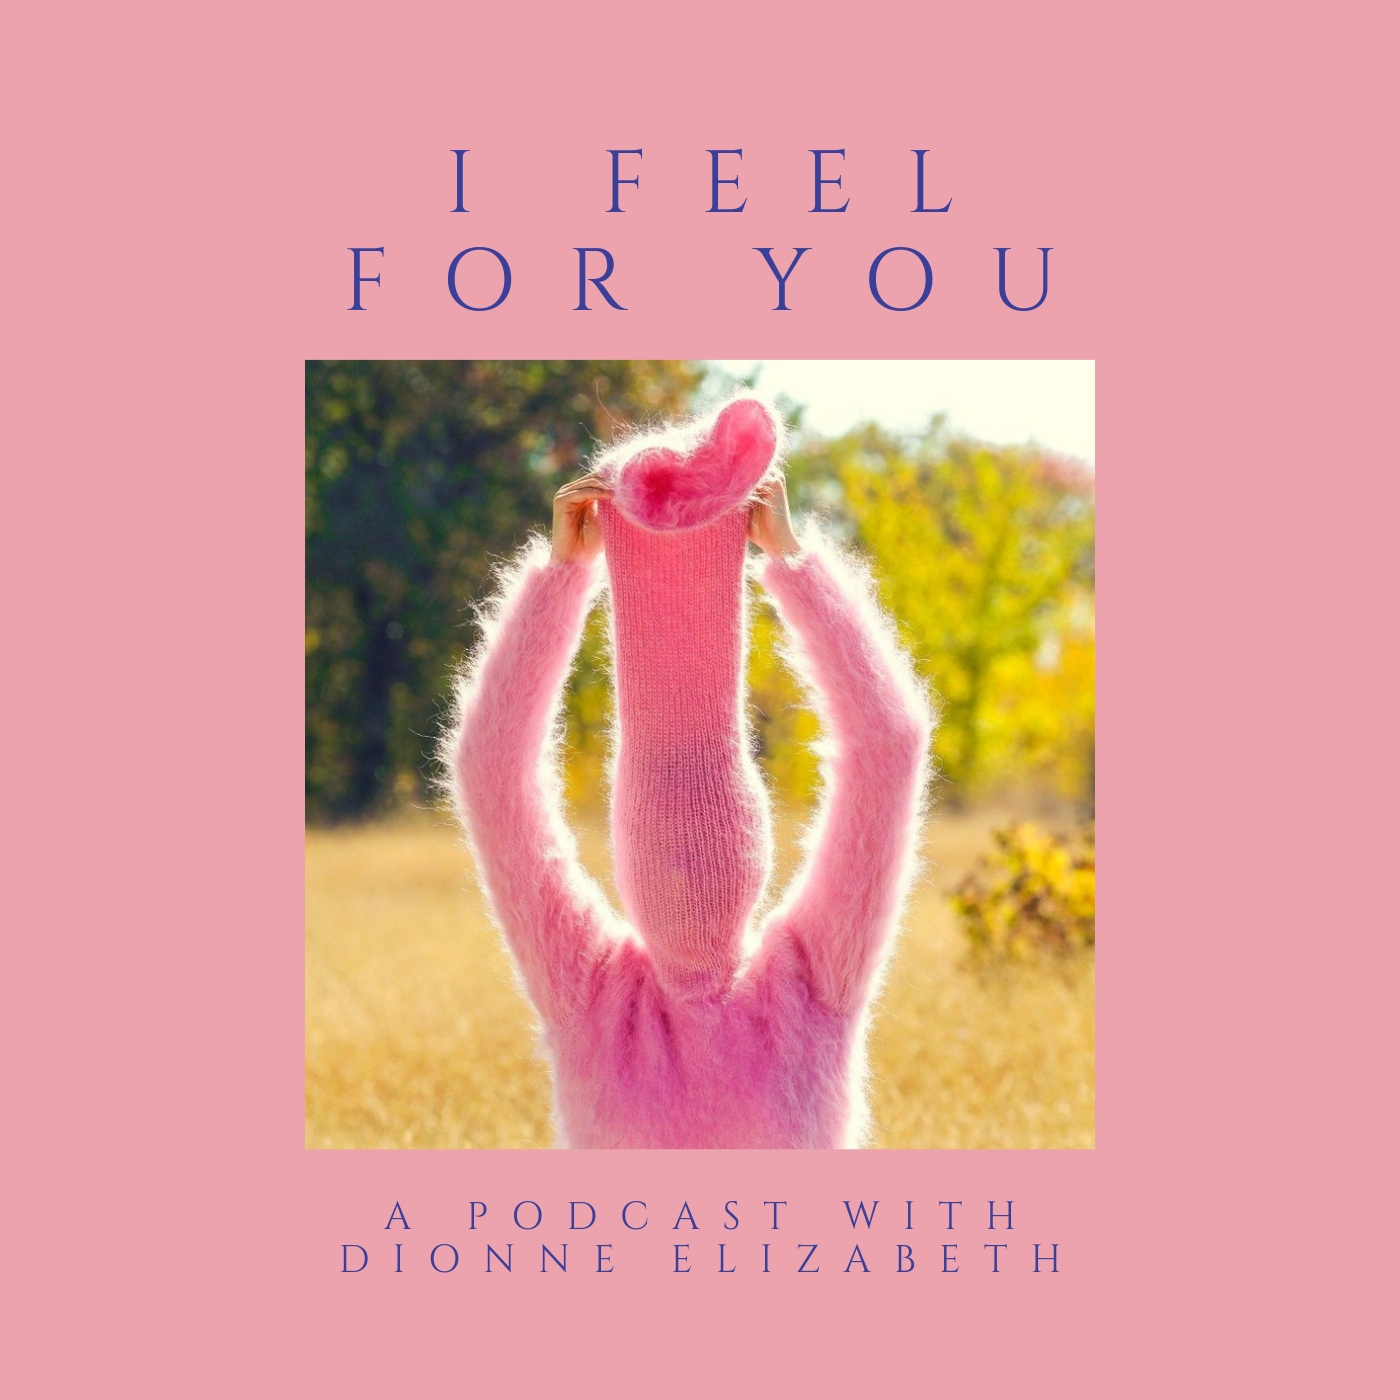 I Feel For You podcast episode 26